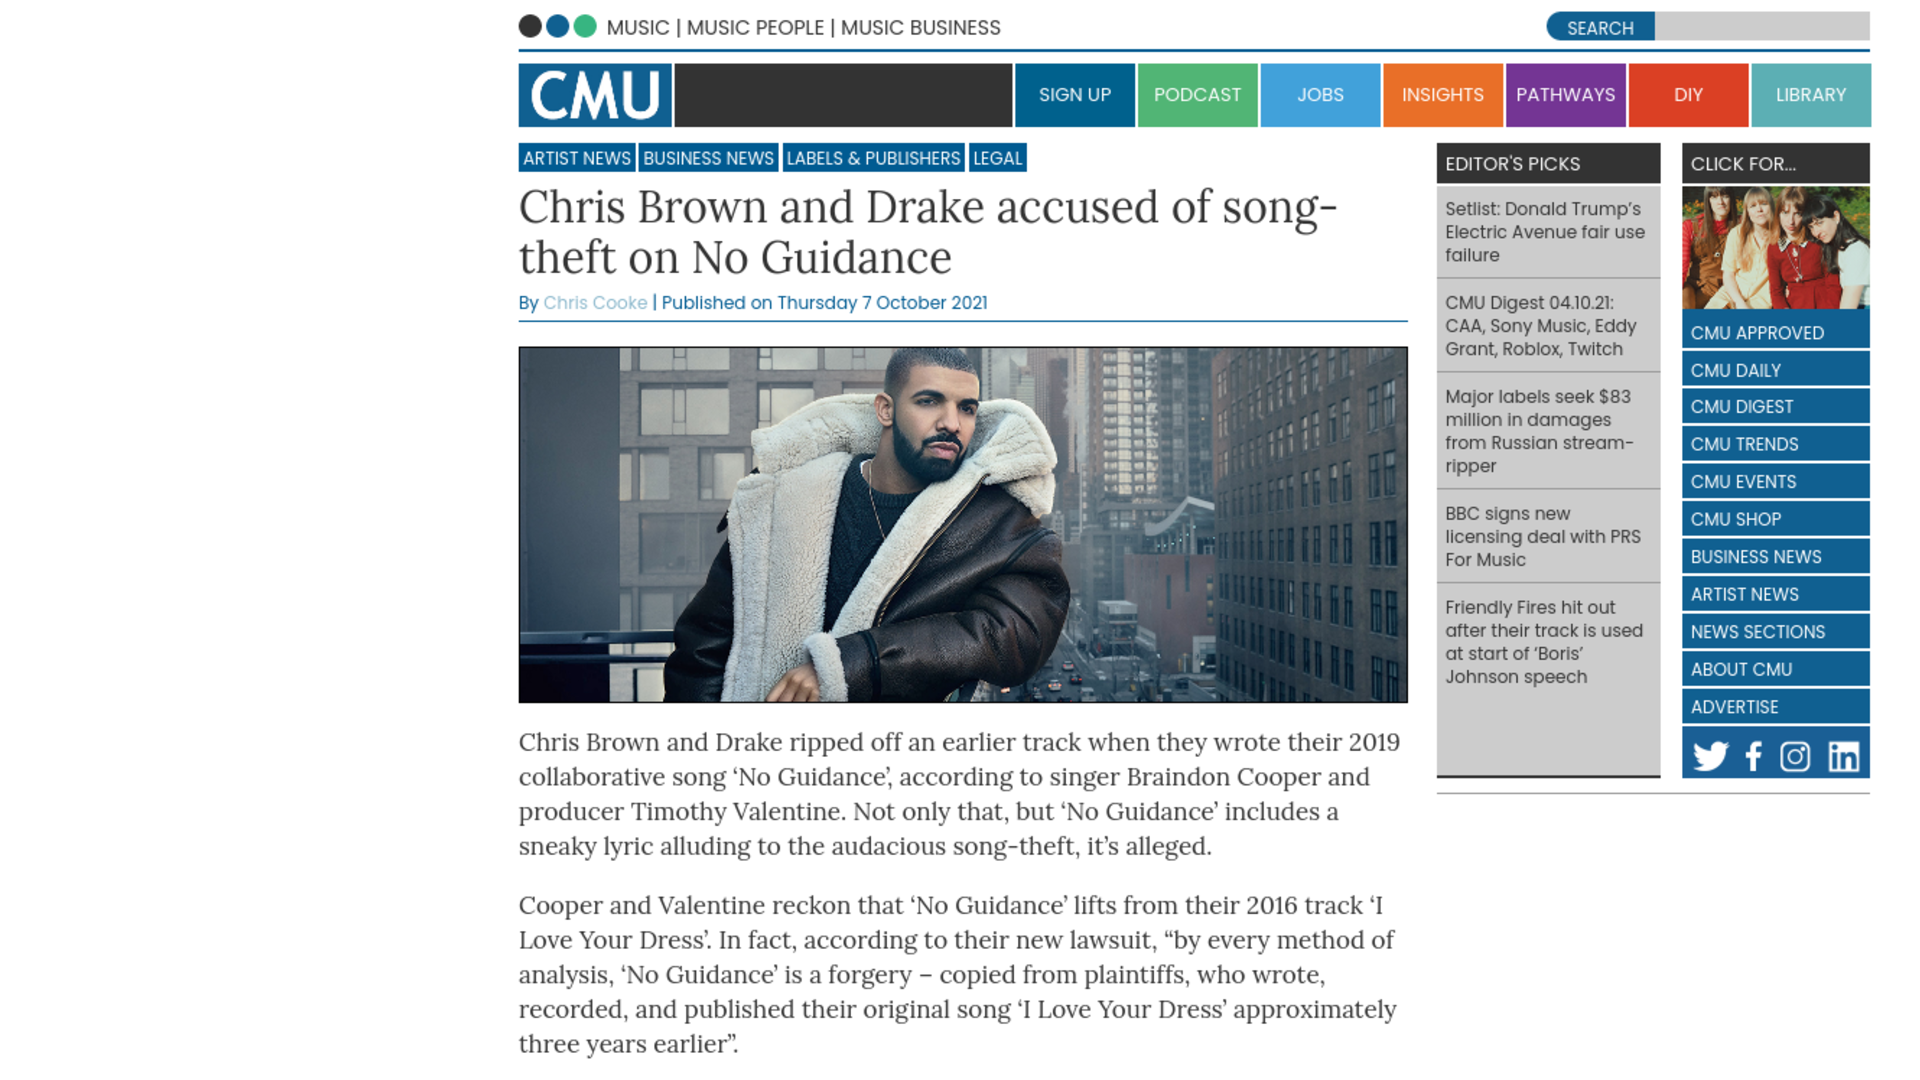 Fairness Rocks News Chris Brown and Drake accused of song-theft on No Guidance